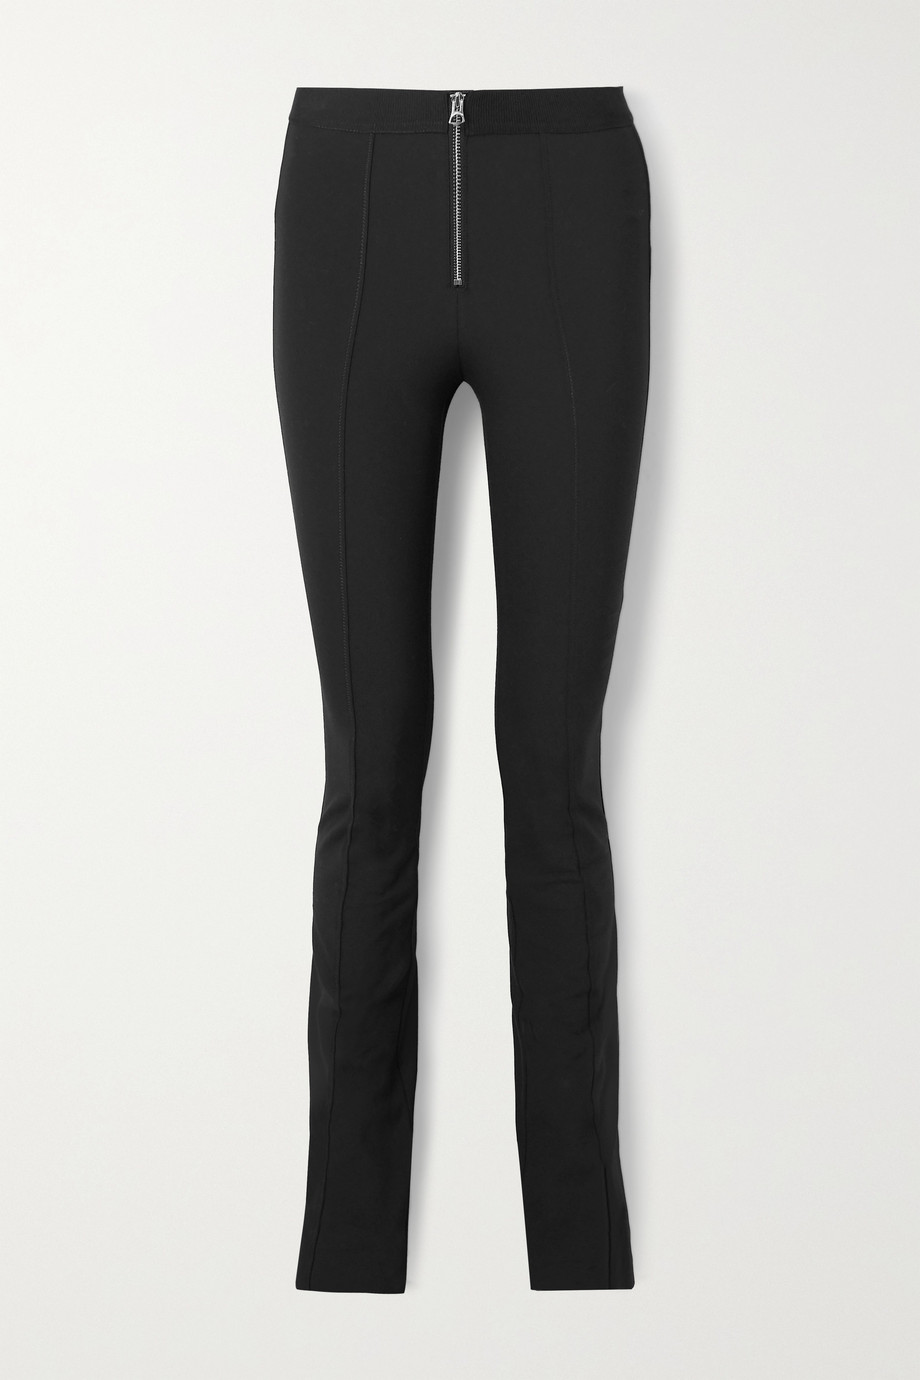 rag & bone Simone stretch cotton-blend flared pants